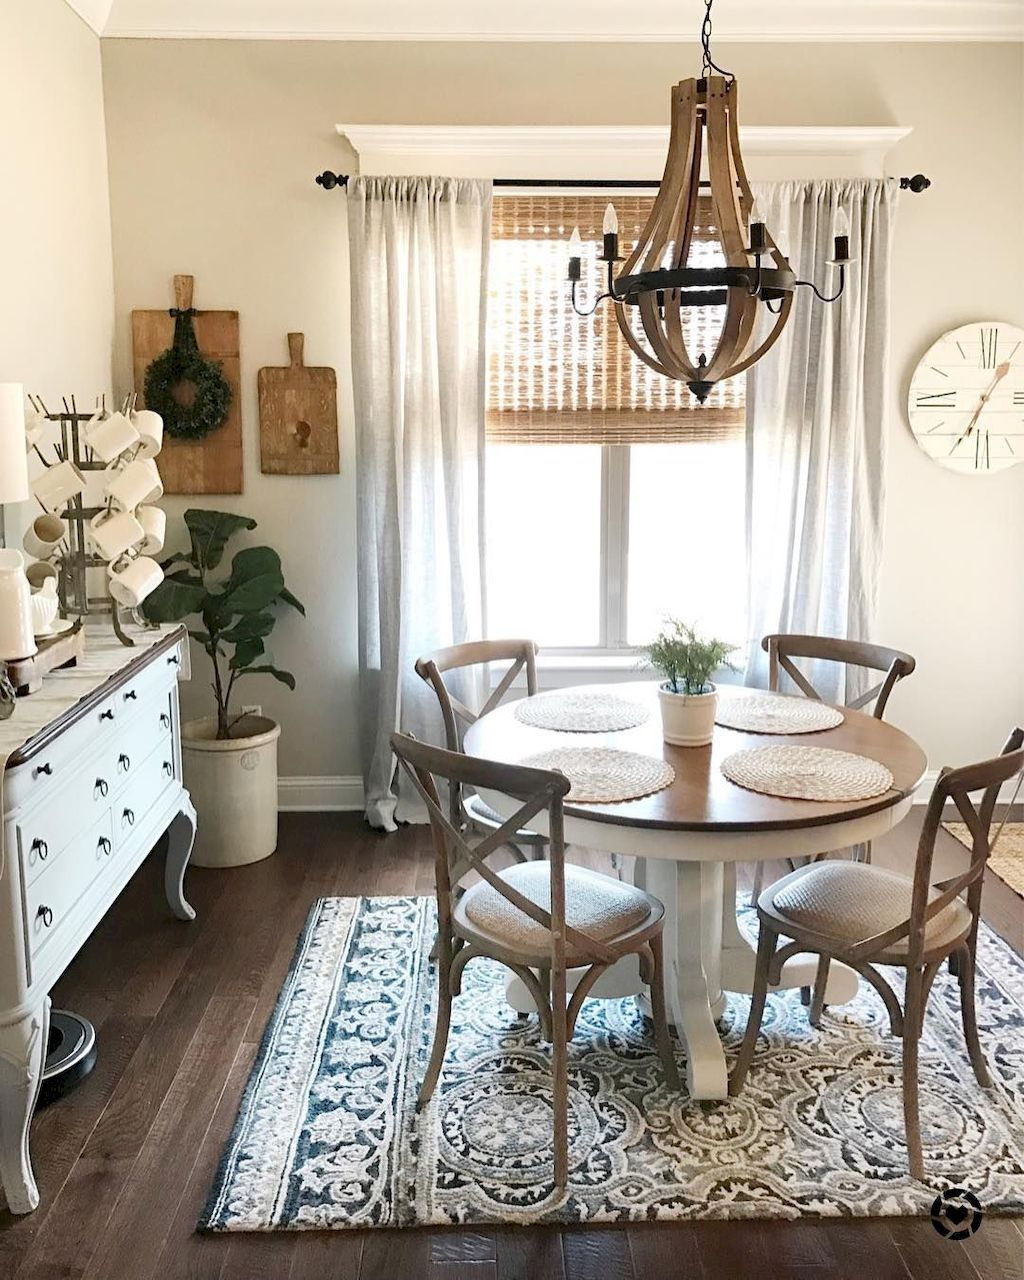 Farmhouse Dining Room: Pin By Carribeanpic.com On Interior & Furniture